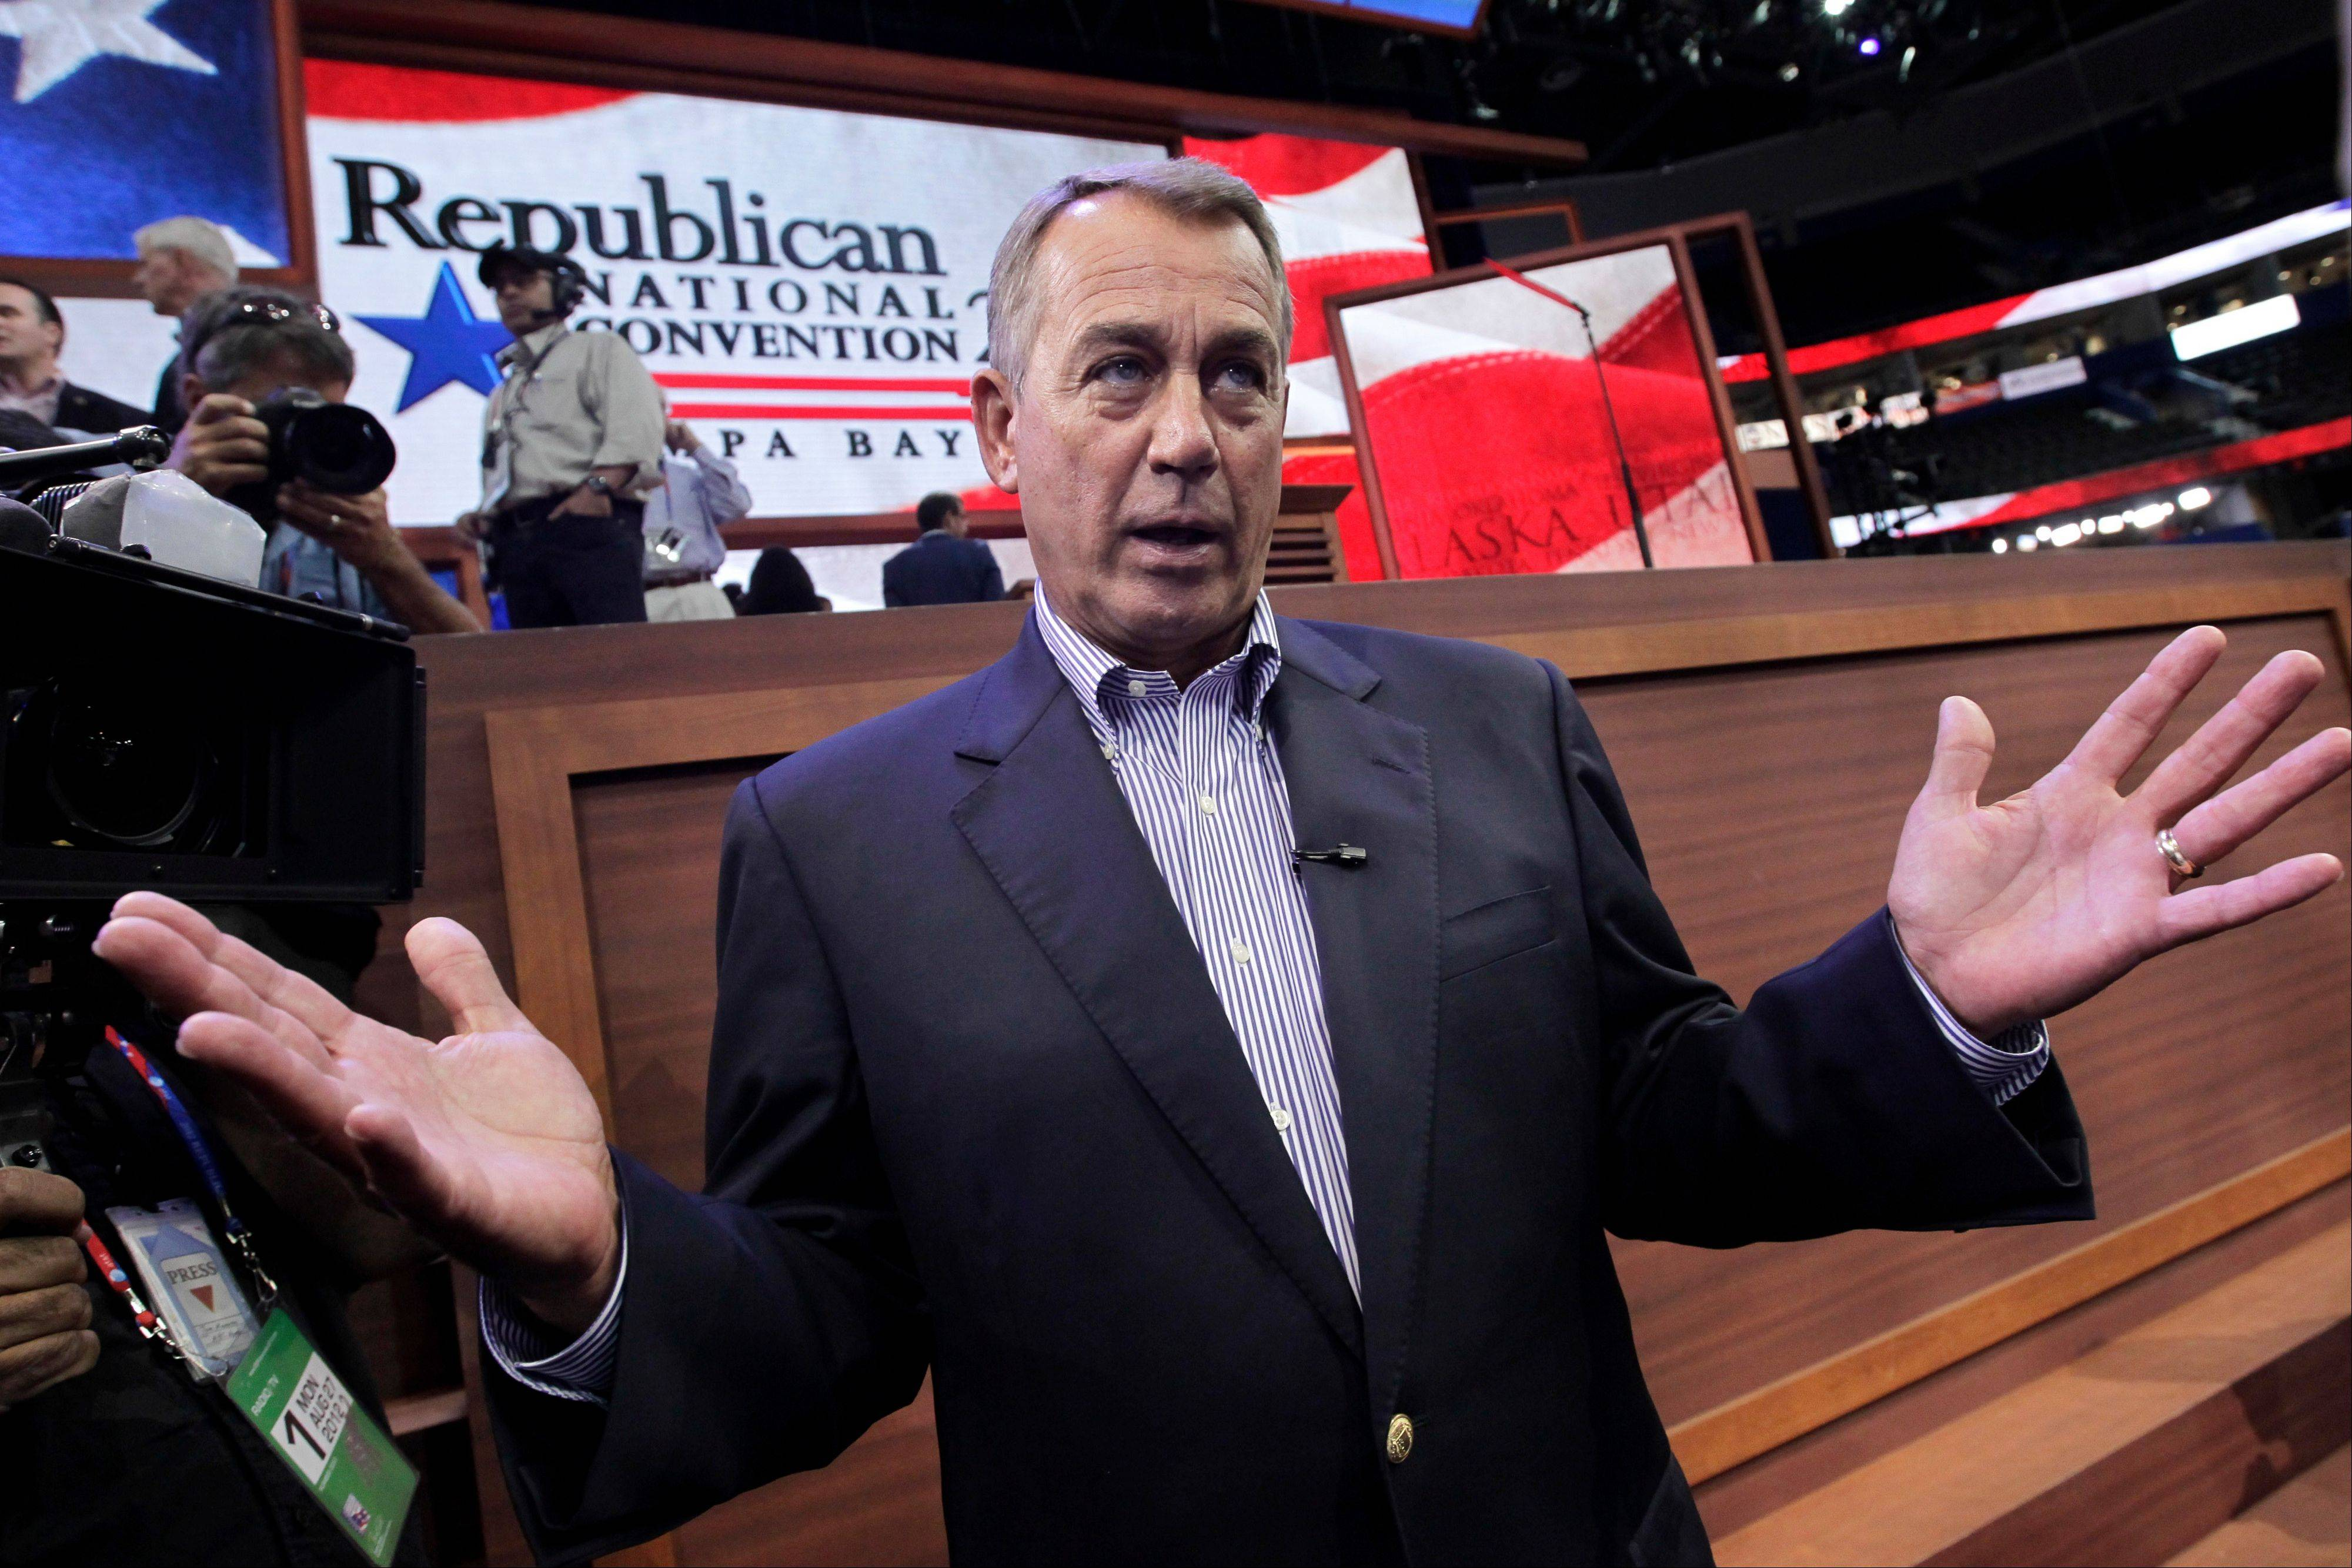 @captioncredit:Associated Press House Speaker John Boehner of Ohio talks to reporters on the floor of the Republican National Convention in the Tampa Bay Times Forum in Tampa, Fla. He spoke to Illinois delegates at their hotel Wednesday.